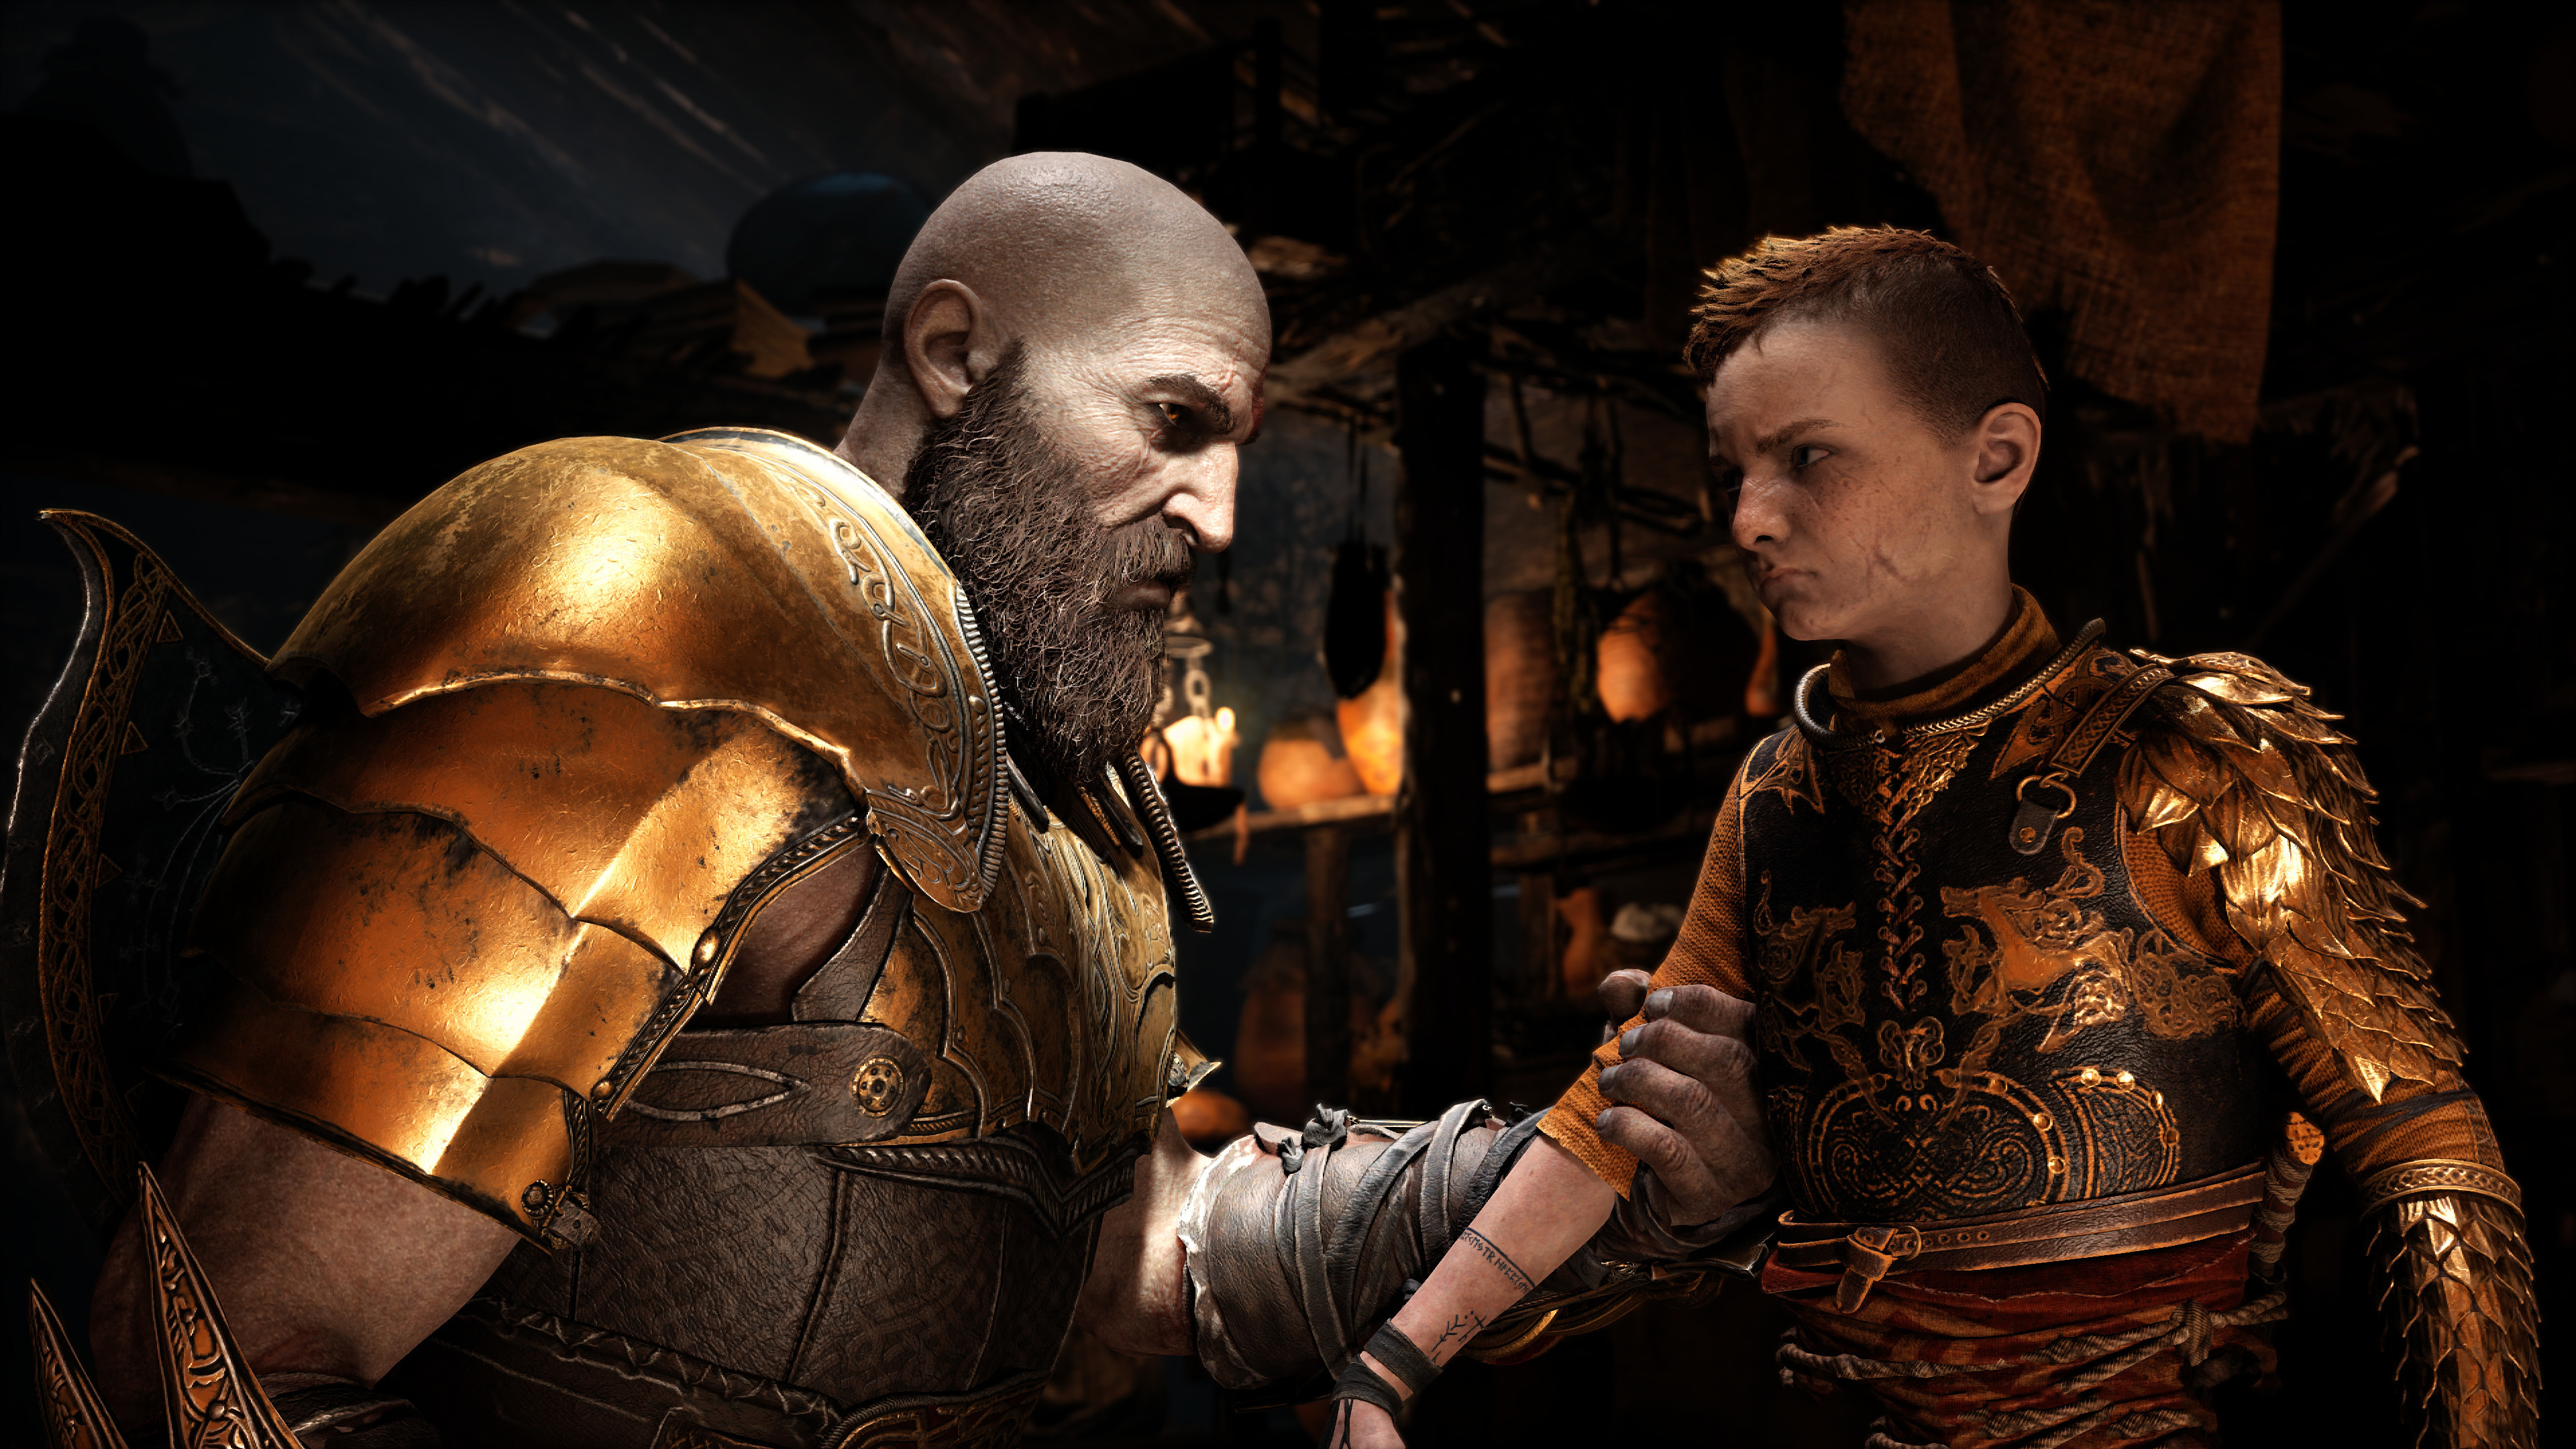 Wallpaper 4k 4k God Of War 4 Kratos And Atreus 4k Wallpapers